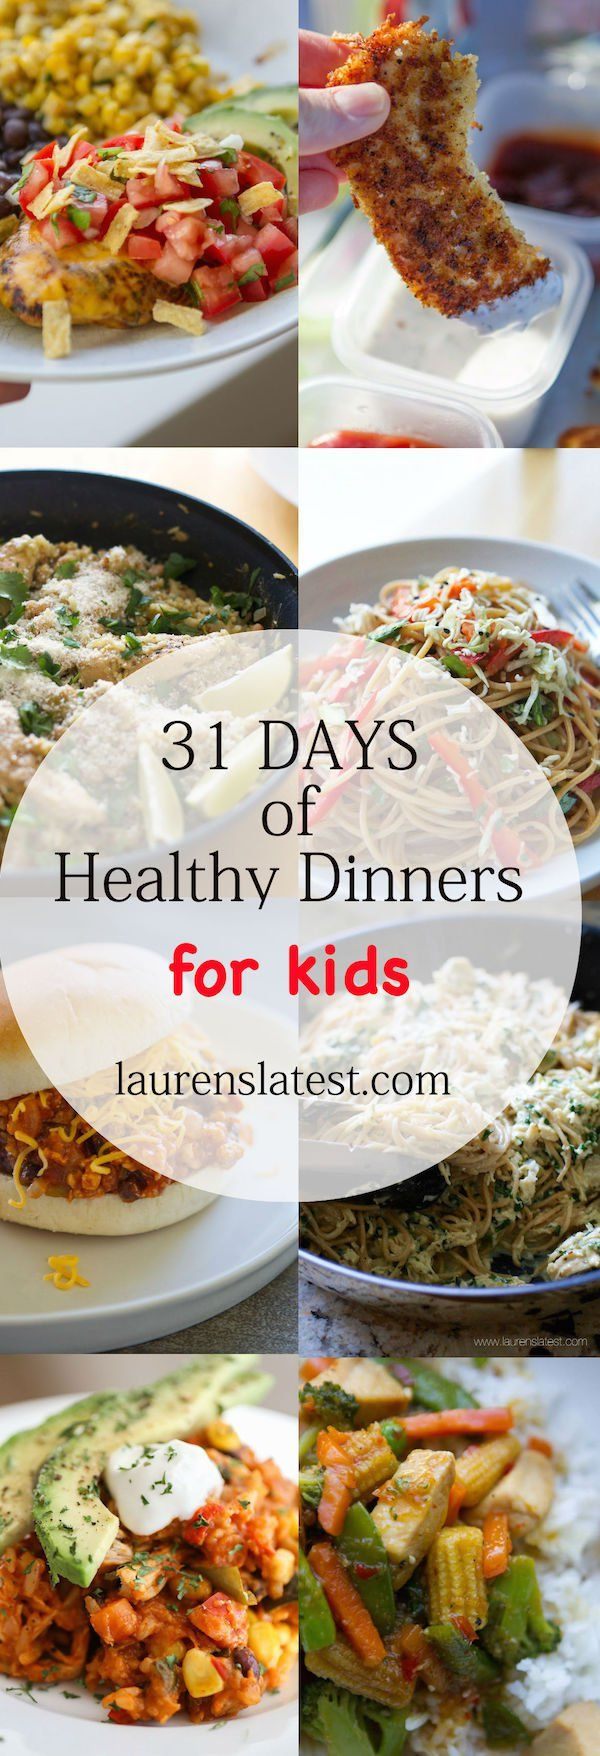 Get 31 recipes for Healthy Dinners that your kids will LOVE! Super palatable, beautiful and delicious dinners that will set you up for a full month of healthy eating success!